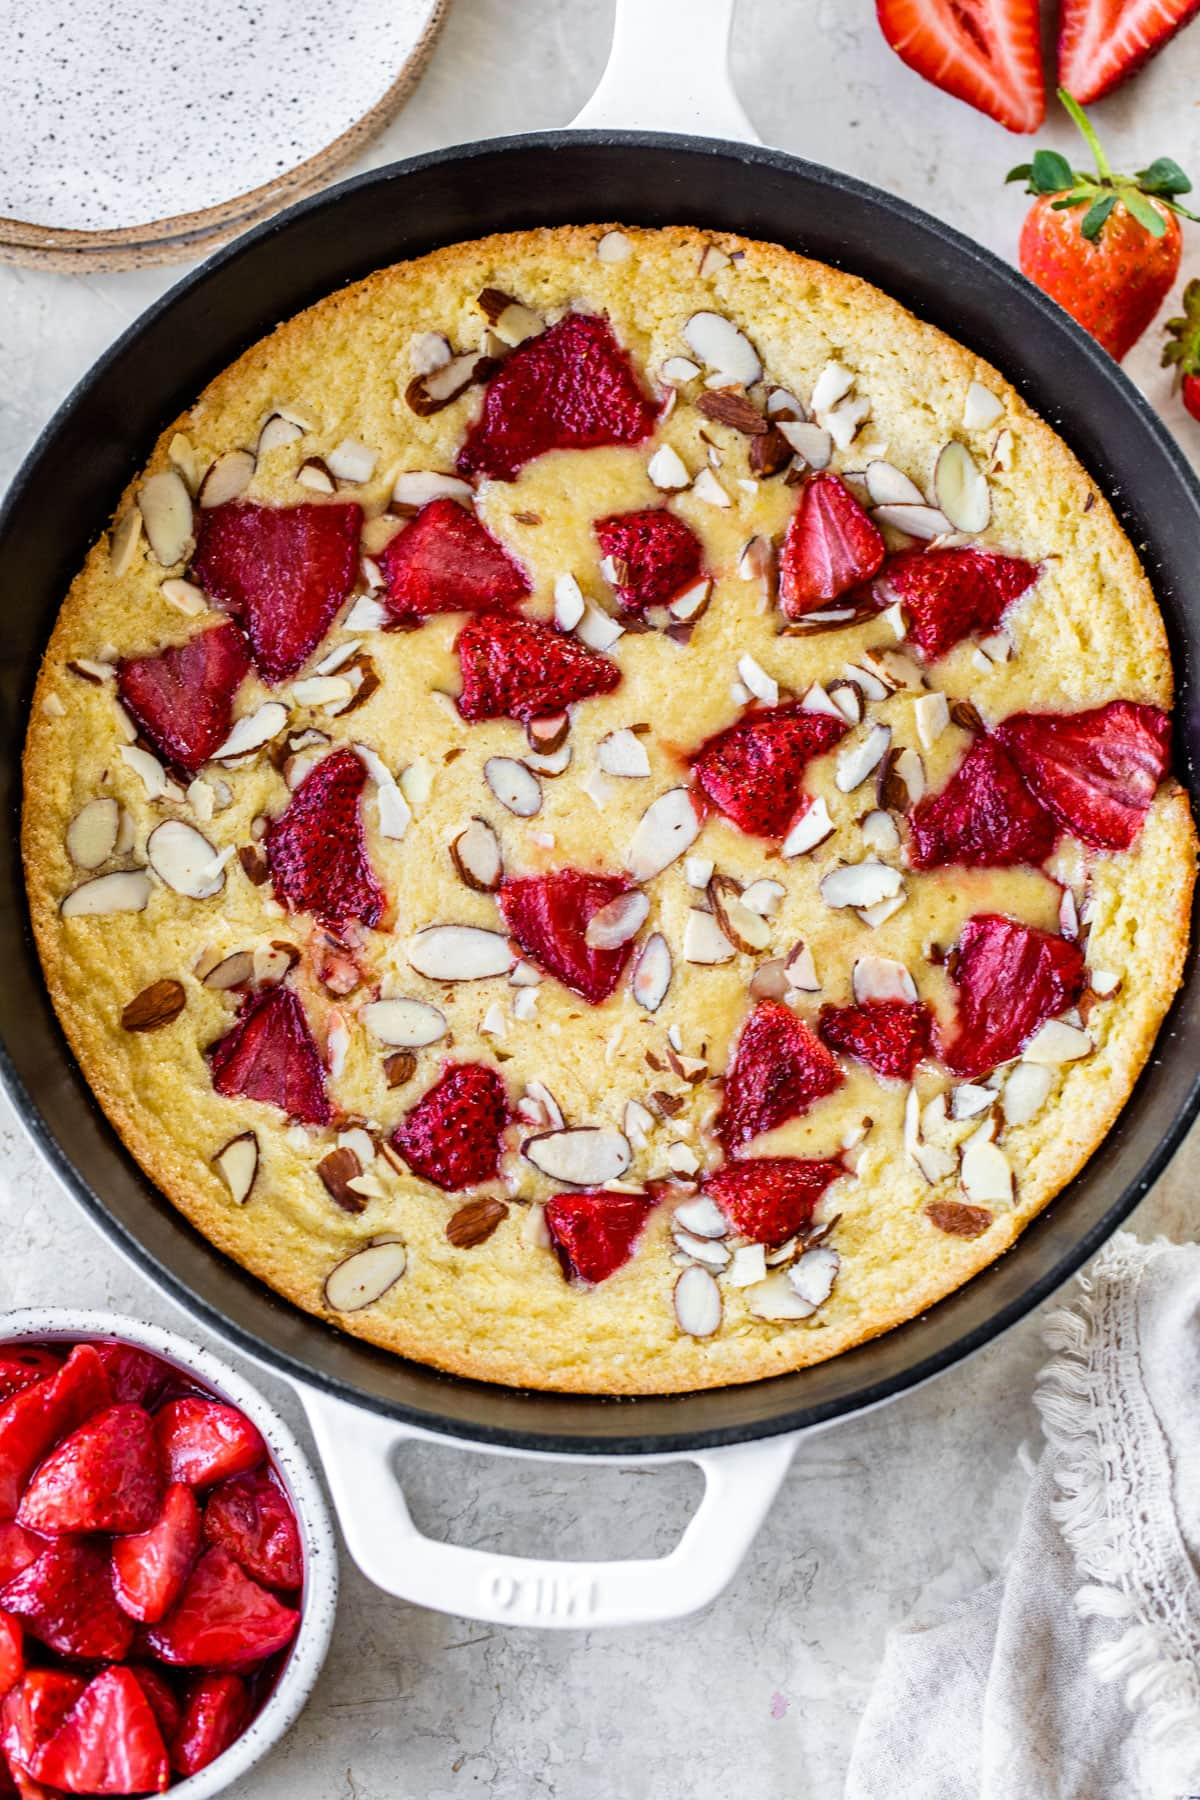 Strawberry Almond Skillet Cake. Moist and easy to make almond cake baked in a skillet and topped with roasted strawberries.